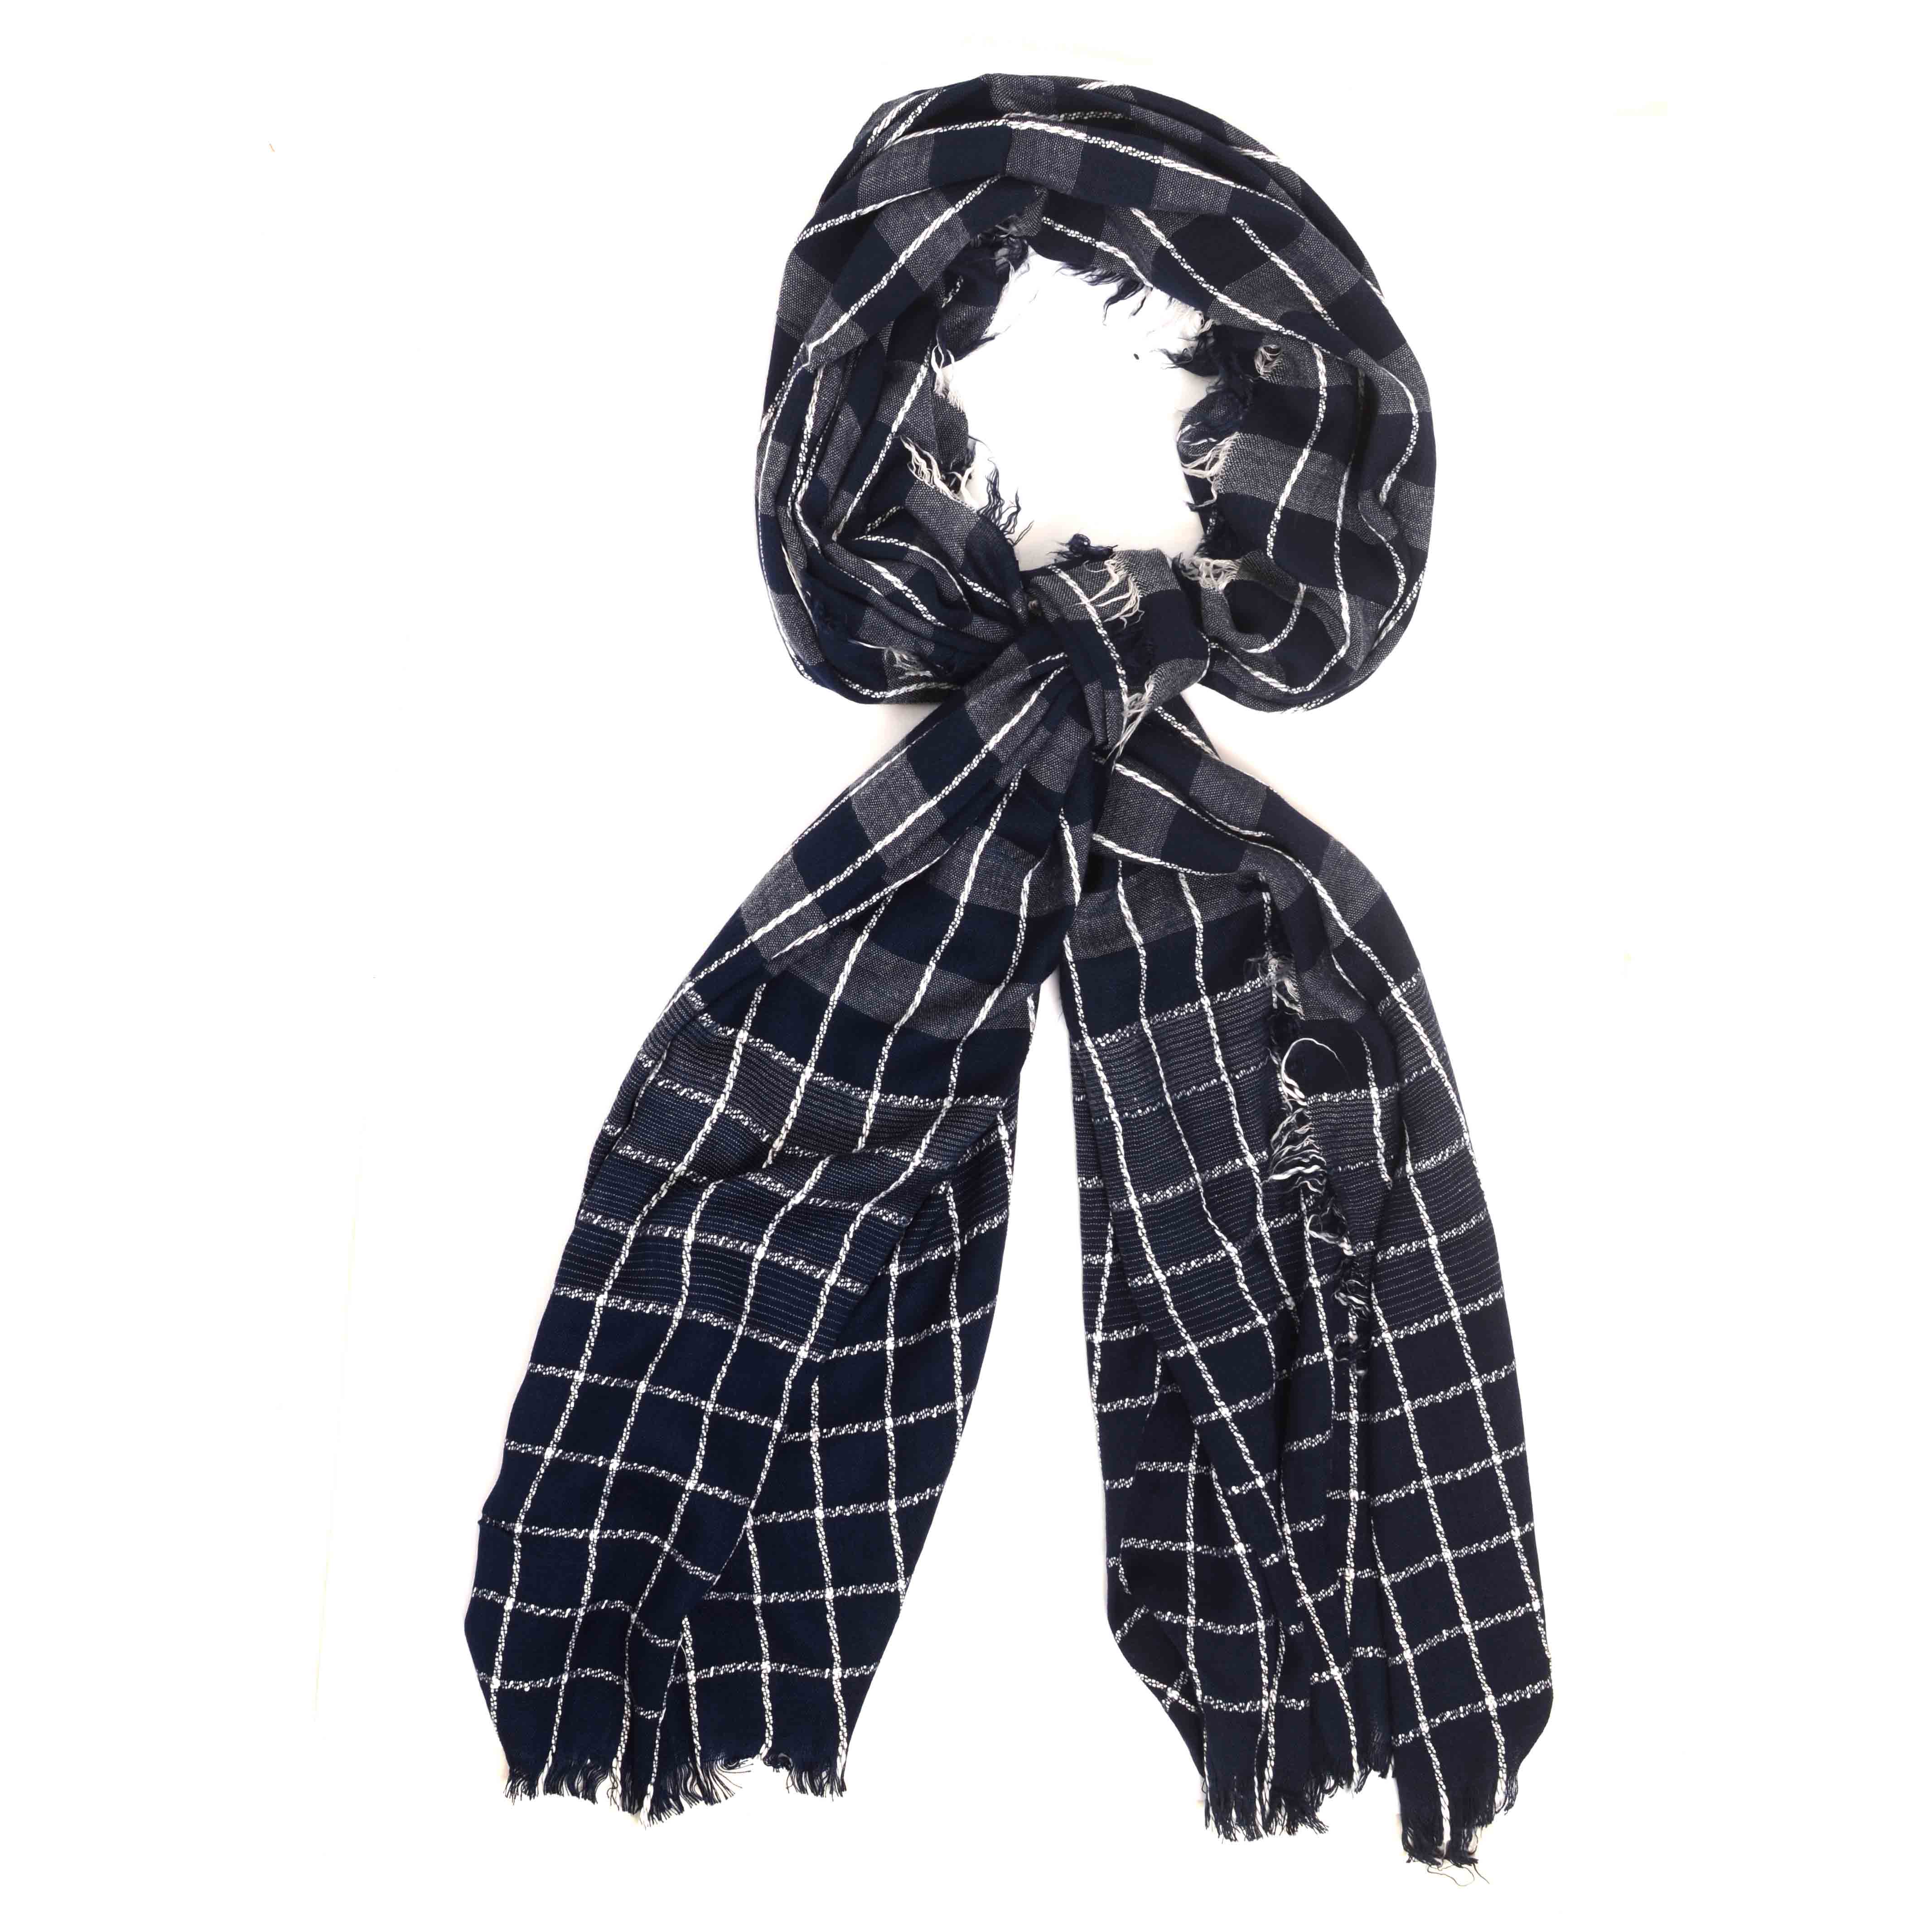 Meo   Scarf with stripe design and check pattern in gret/navy